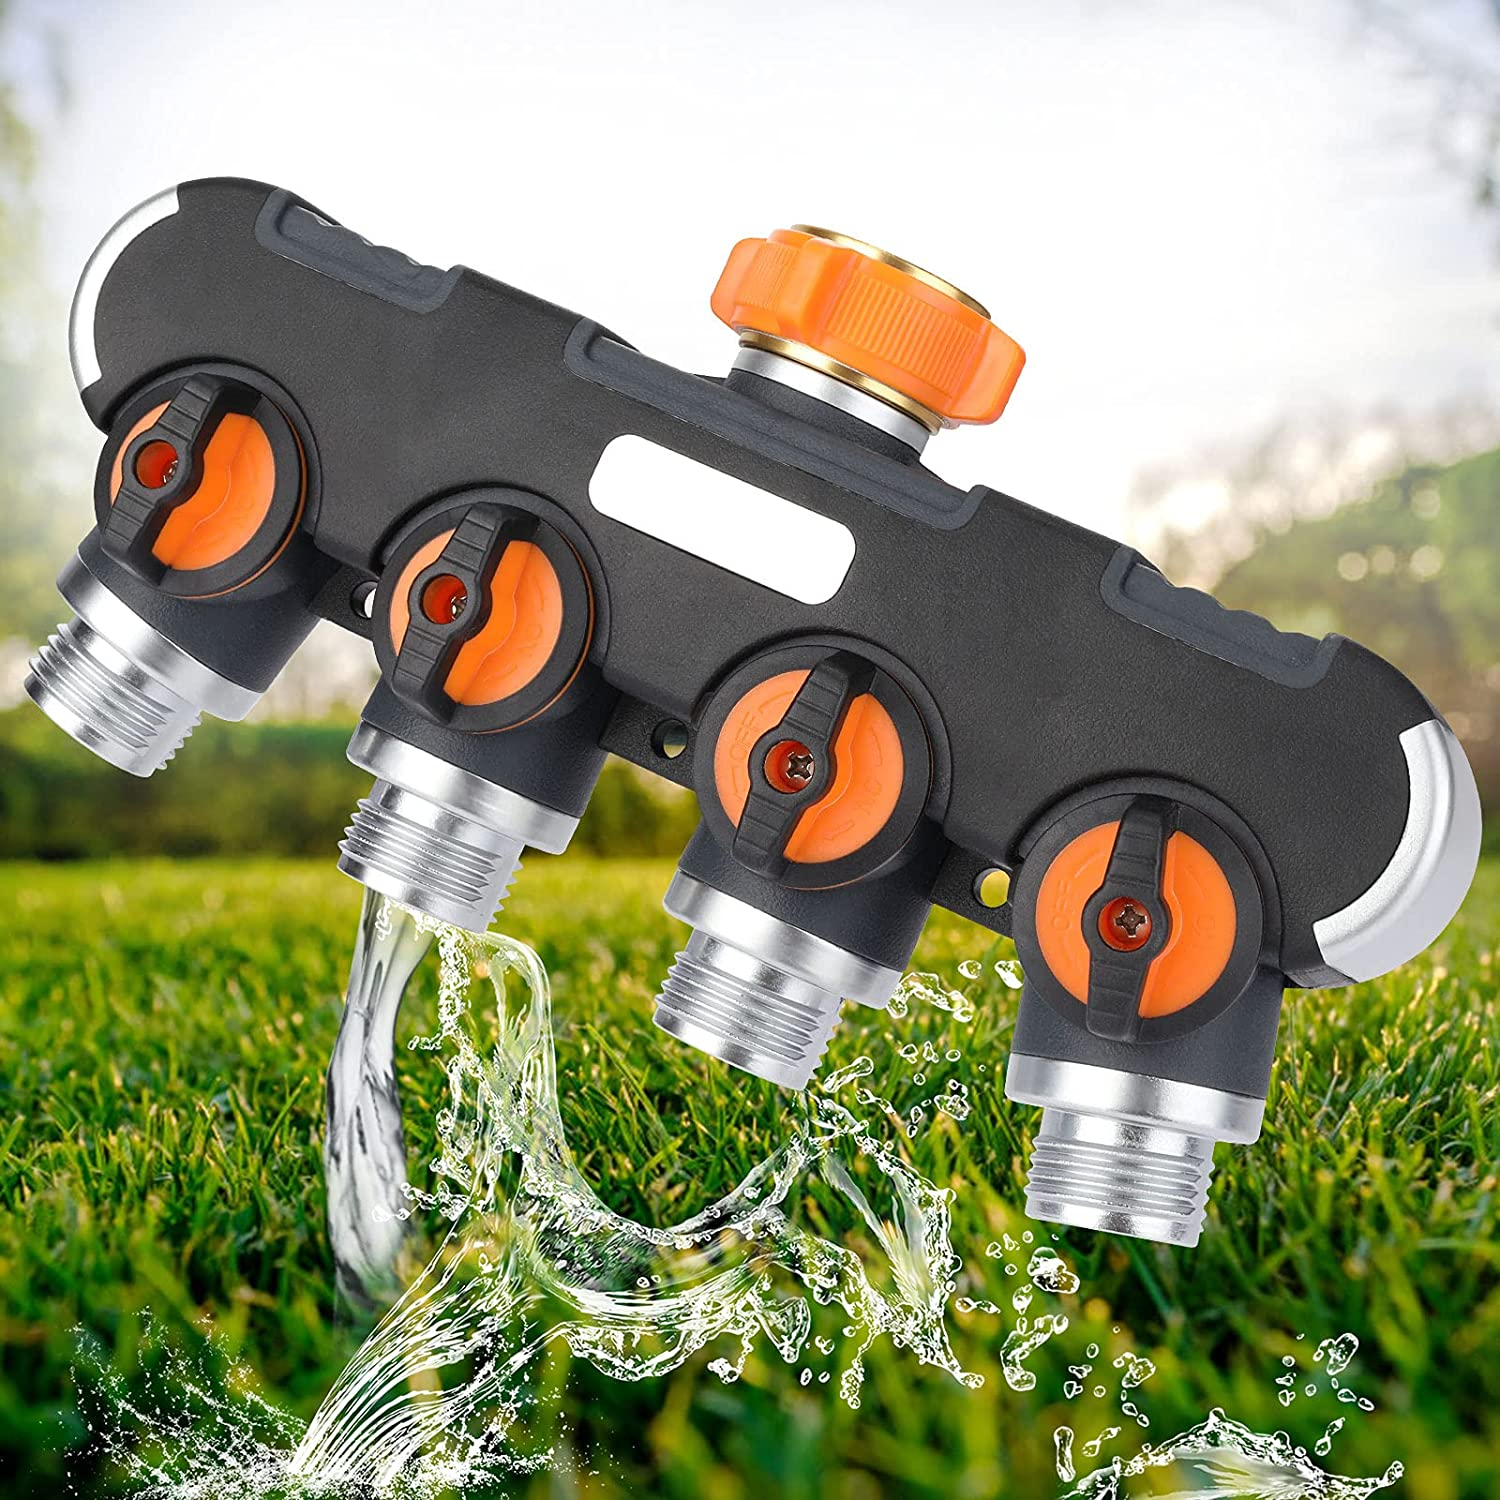 XDDIAS 4 Way Garden Hose Splitter with 4 Valves, 3/4 Inch Heavy Duty Hose Water Manifold Connector for Outdoor Faucet Adapter